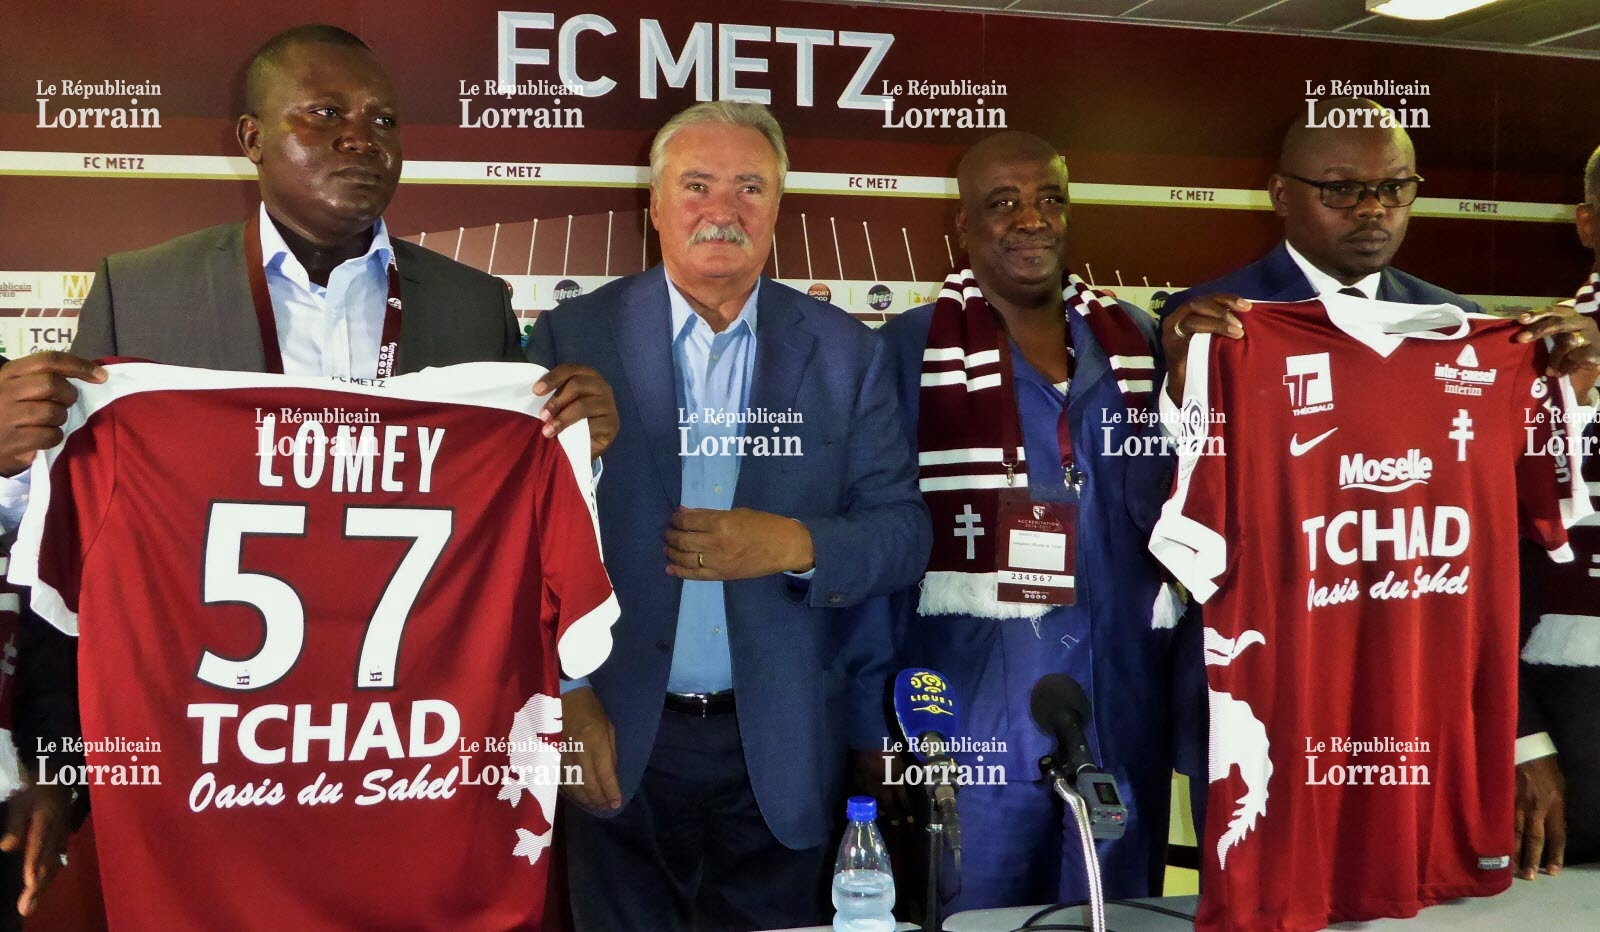 affaire sponsoring du fc metz le ministre tchadien des sports recadre les choses camerounsports. Black Bedroom Furniture Sets. Home Design Ideas